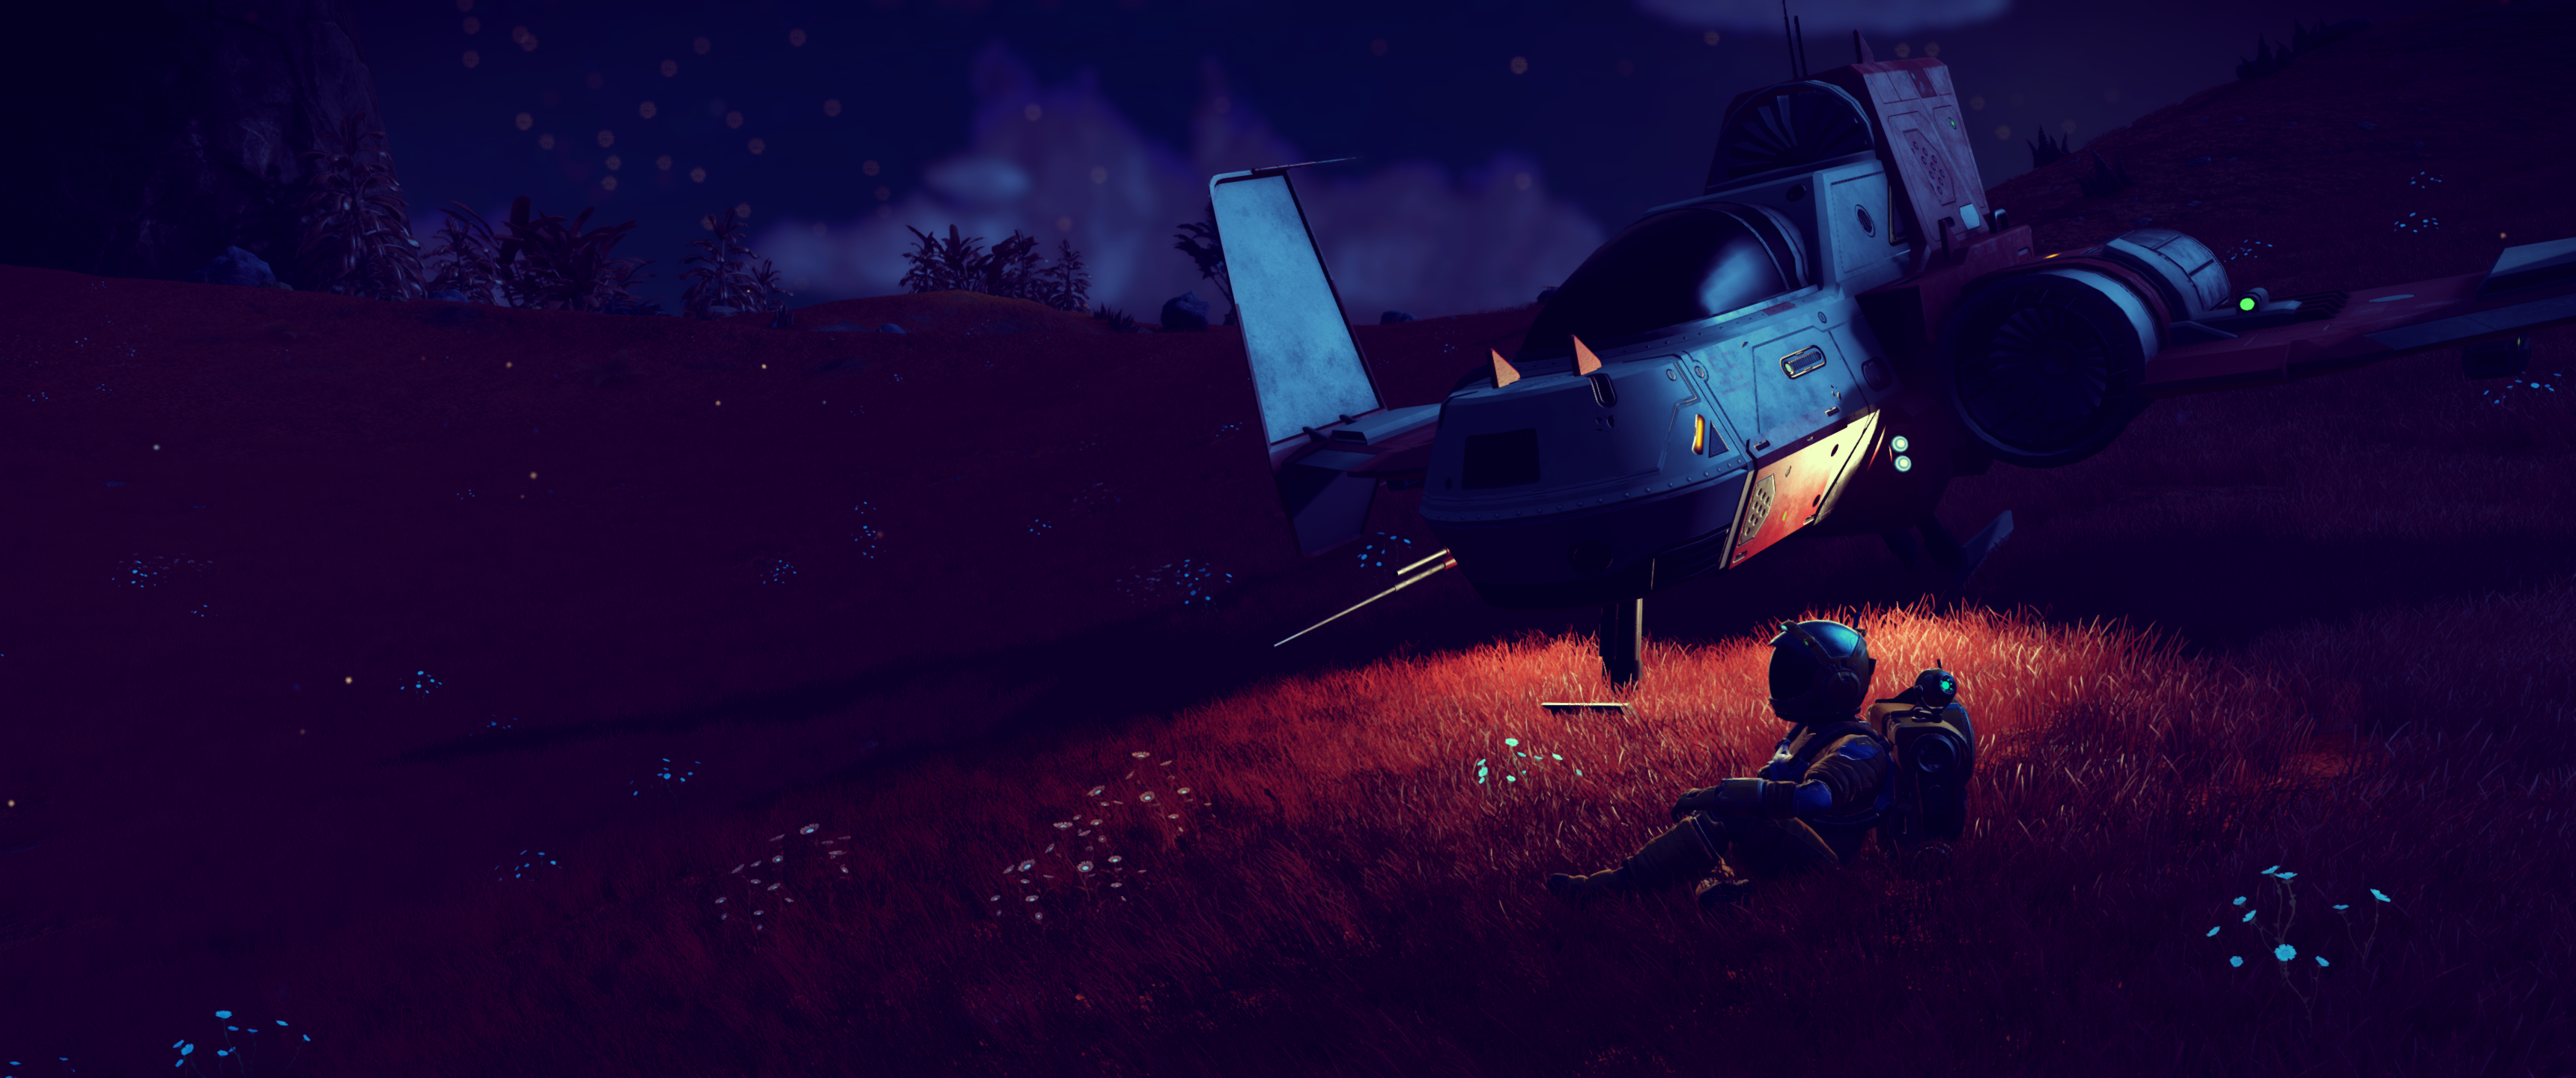 nms_2018_07_30_11_45_kui3h.png